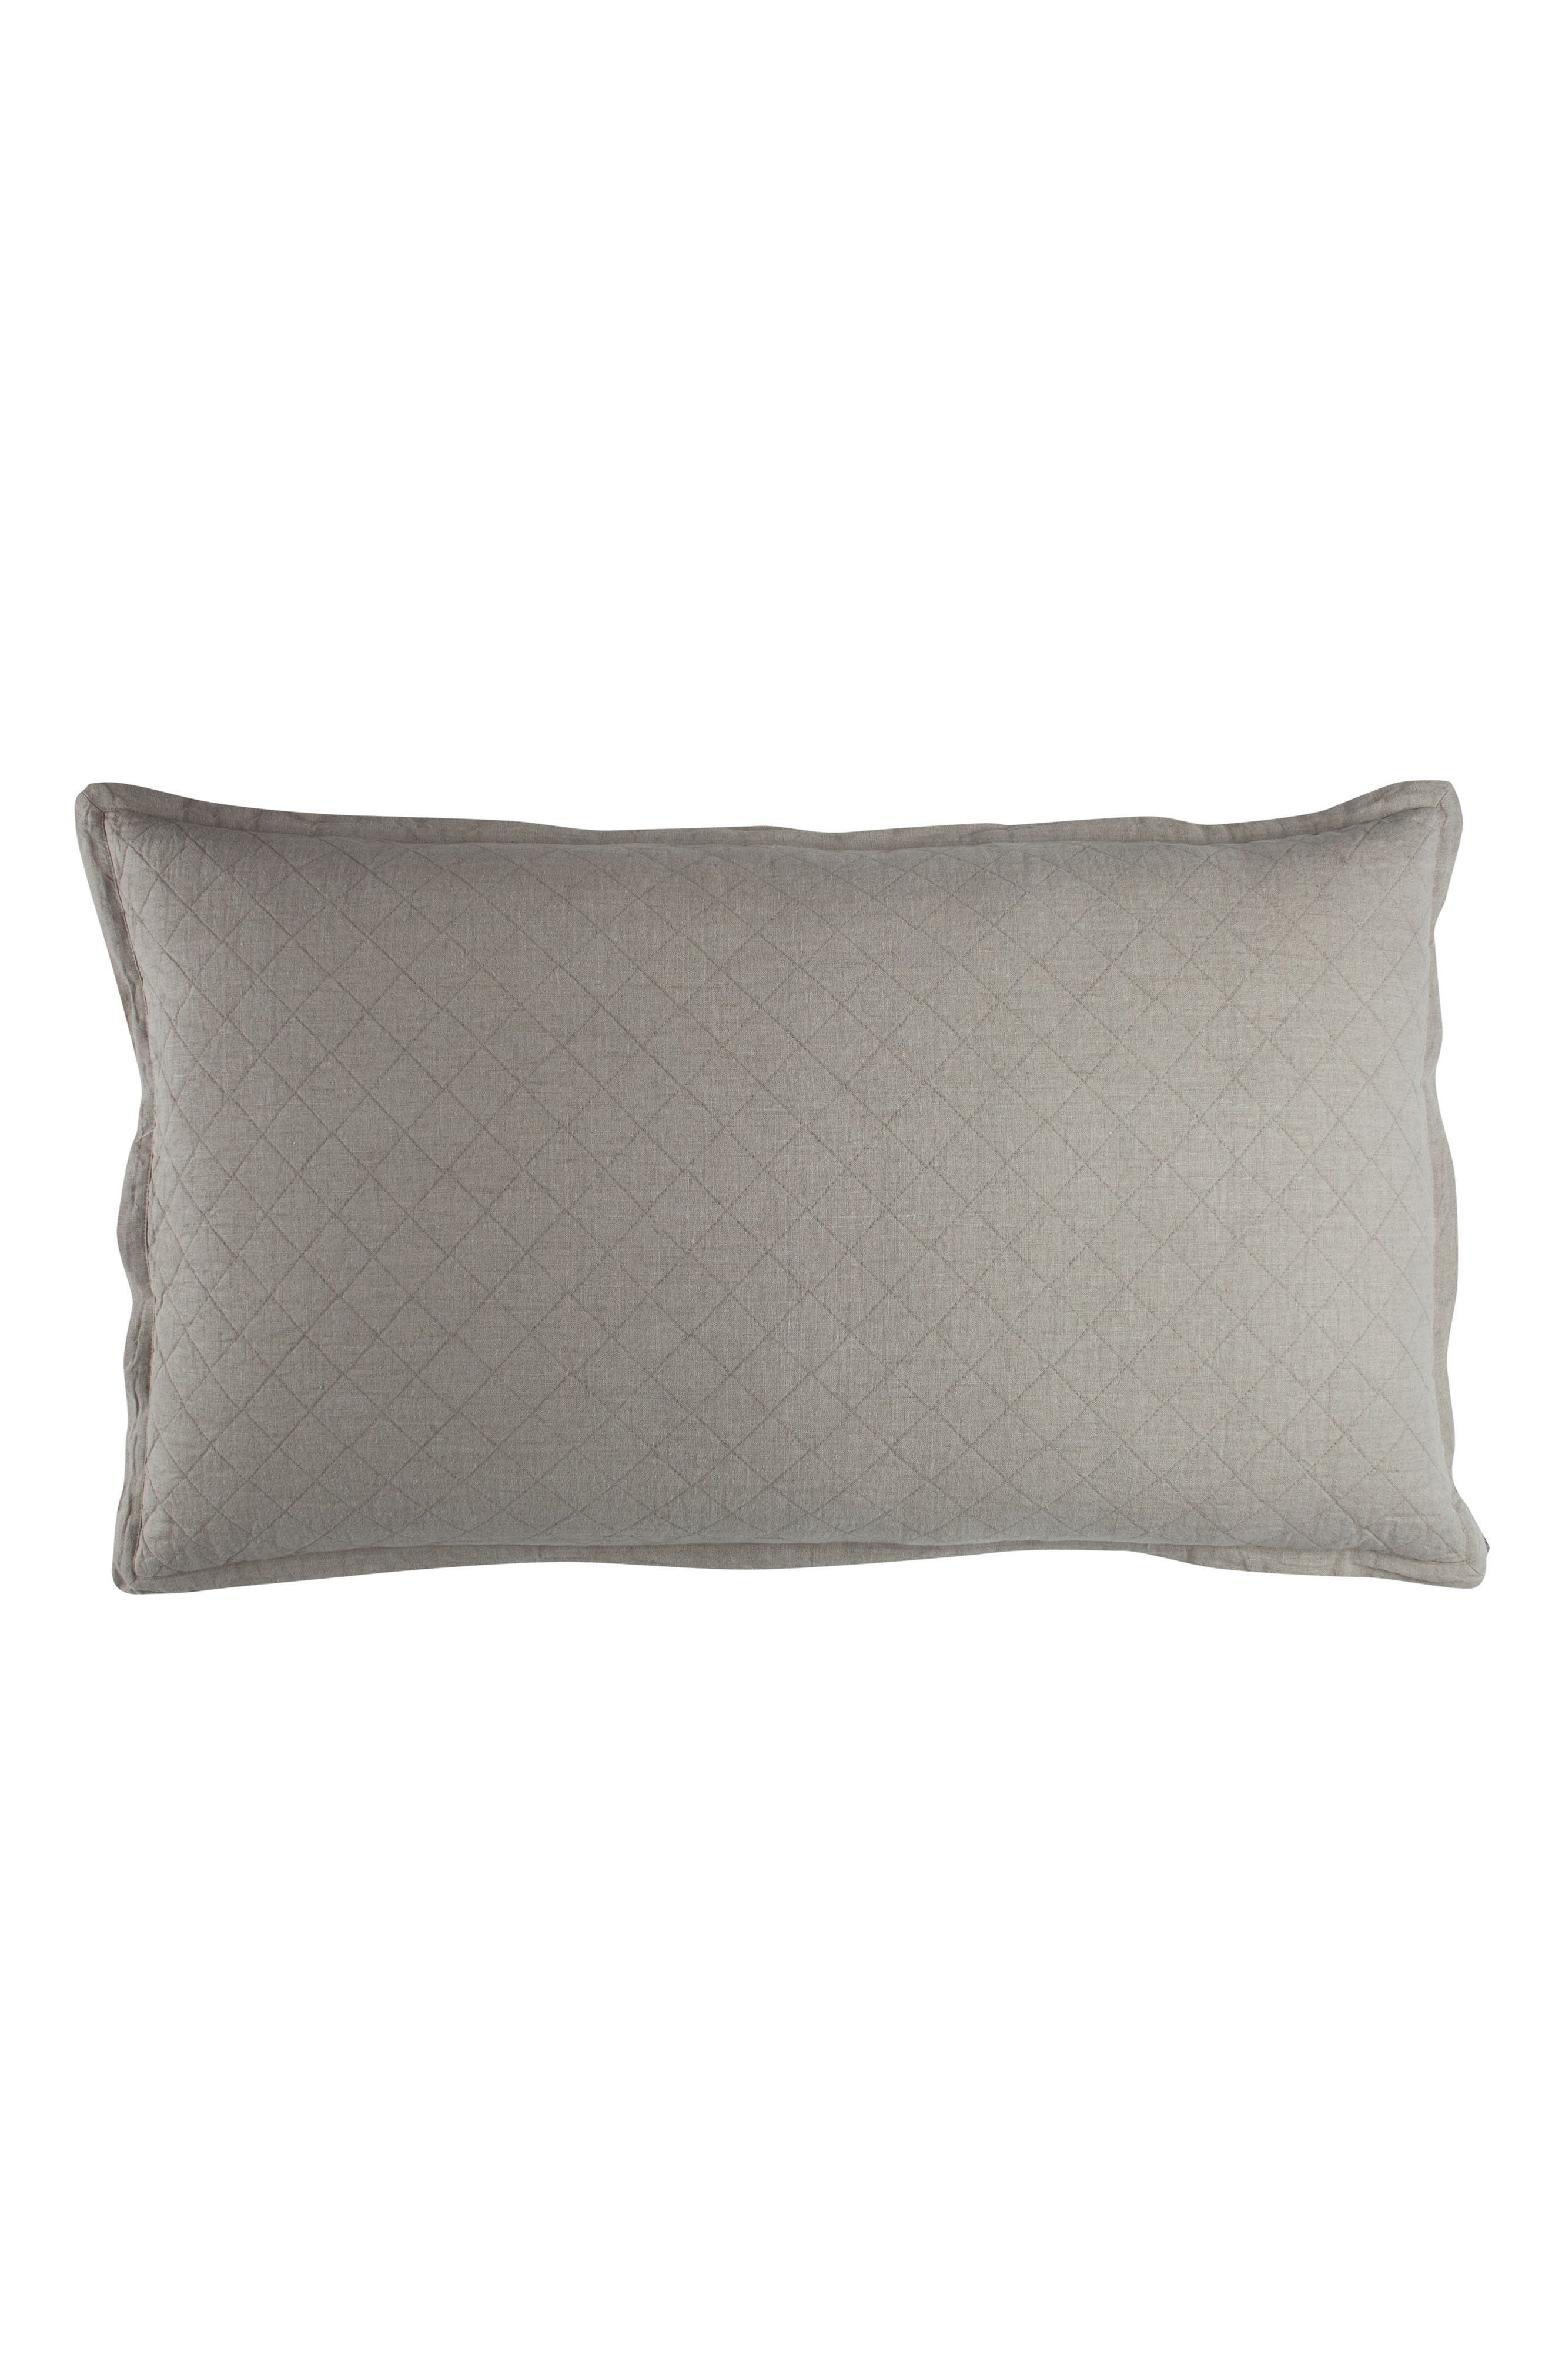 Emily Diamond Quilted Sham,                             Alternate thumbnail 3, color,                             020